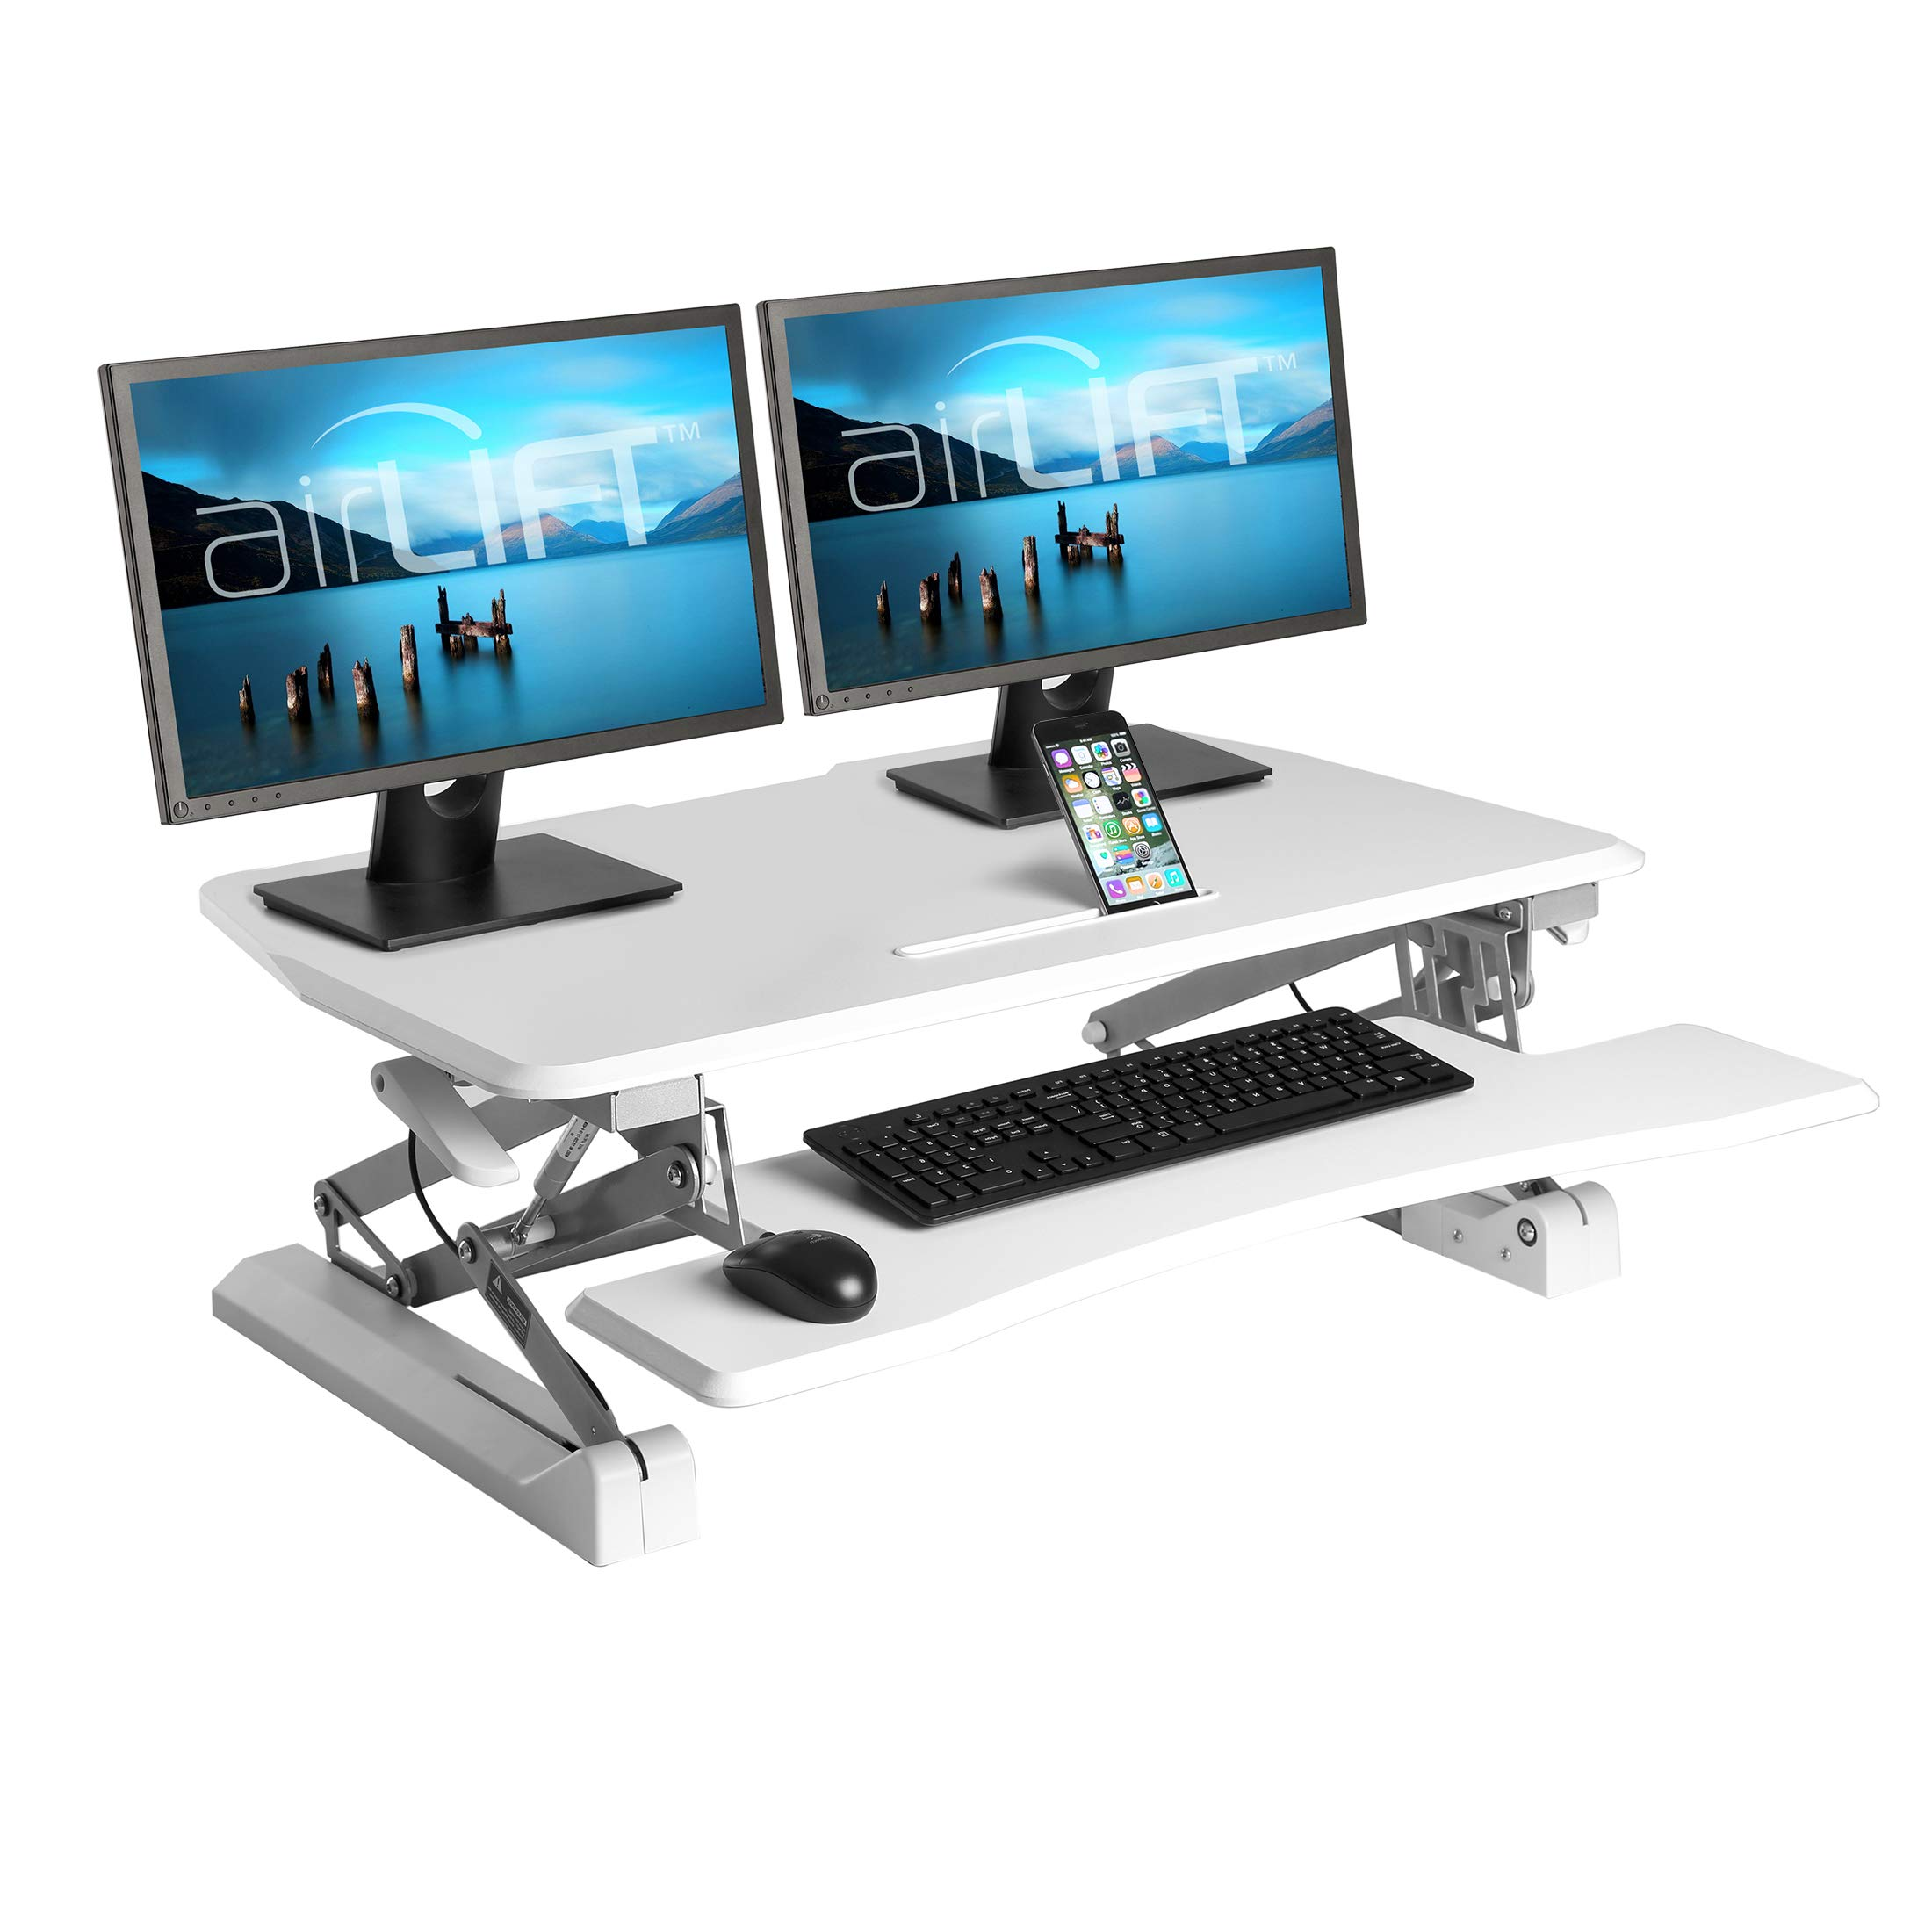 Seville Classics OFF65808 Airlift 36'' Gas-Spring Height Adjustable Standing Desk Converter Workstation Ergonomic Dual Monitor Riser with Keyboard Tray and Phone/Tablet Holder, Full, White